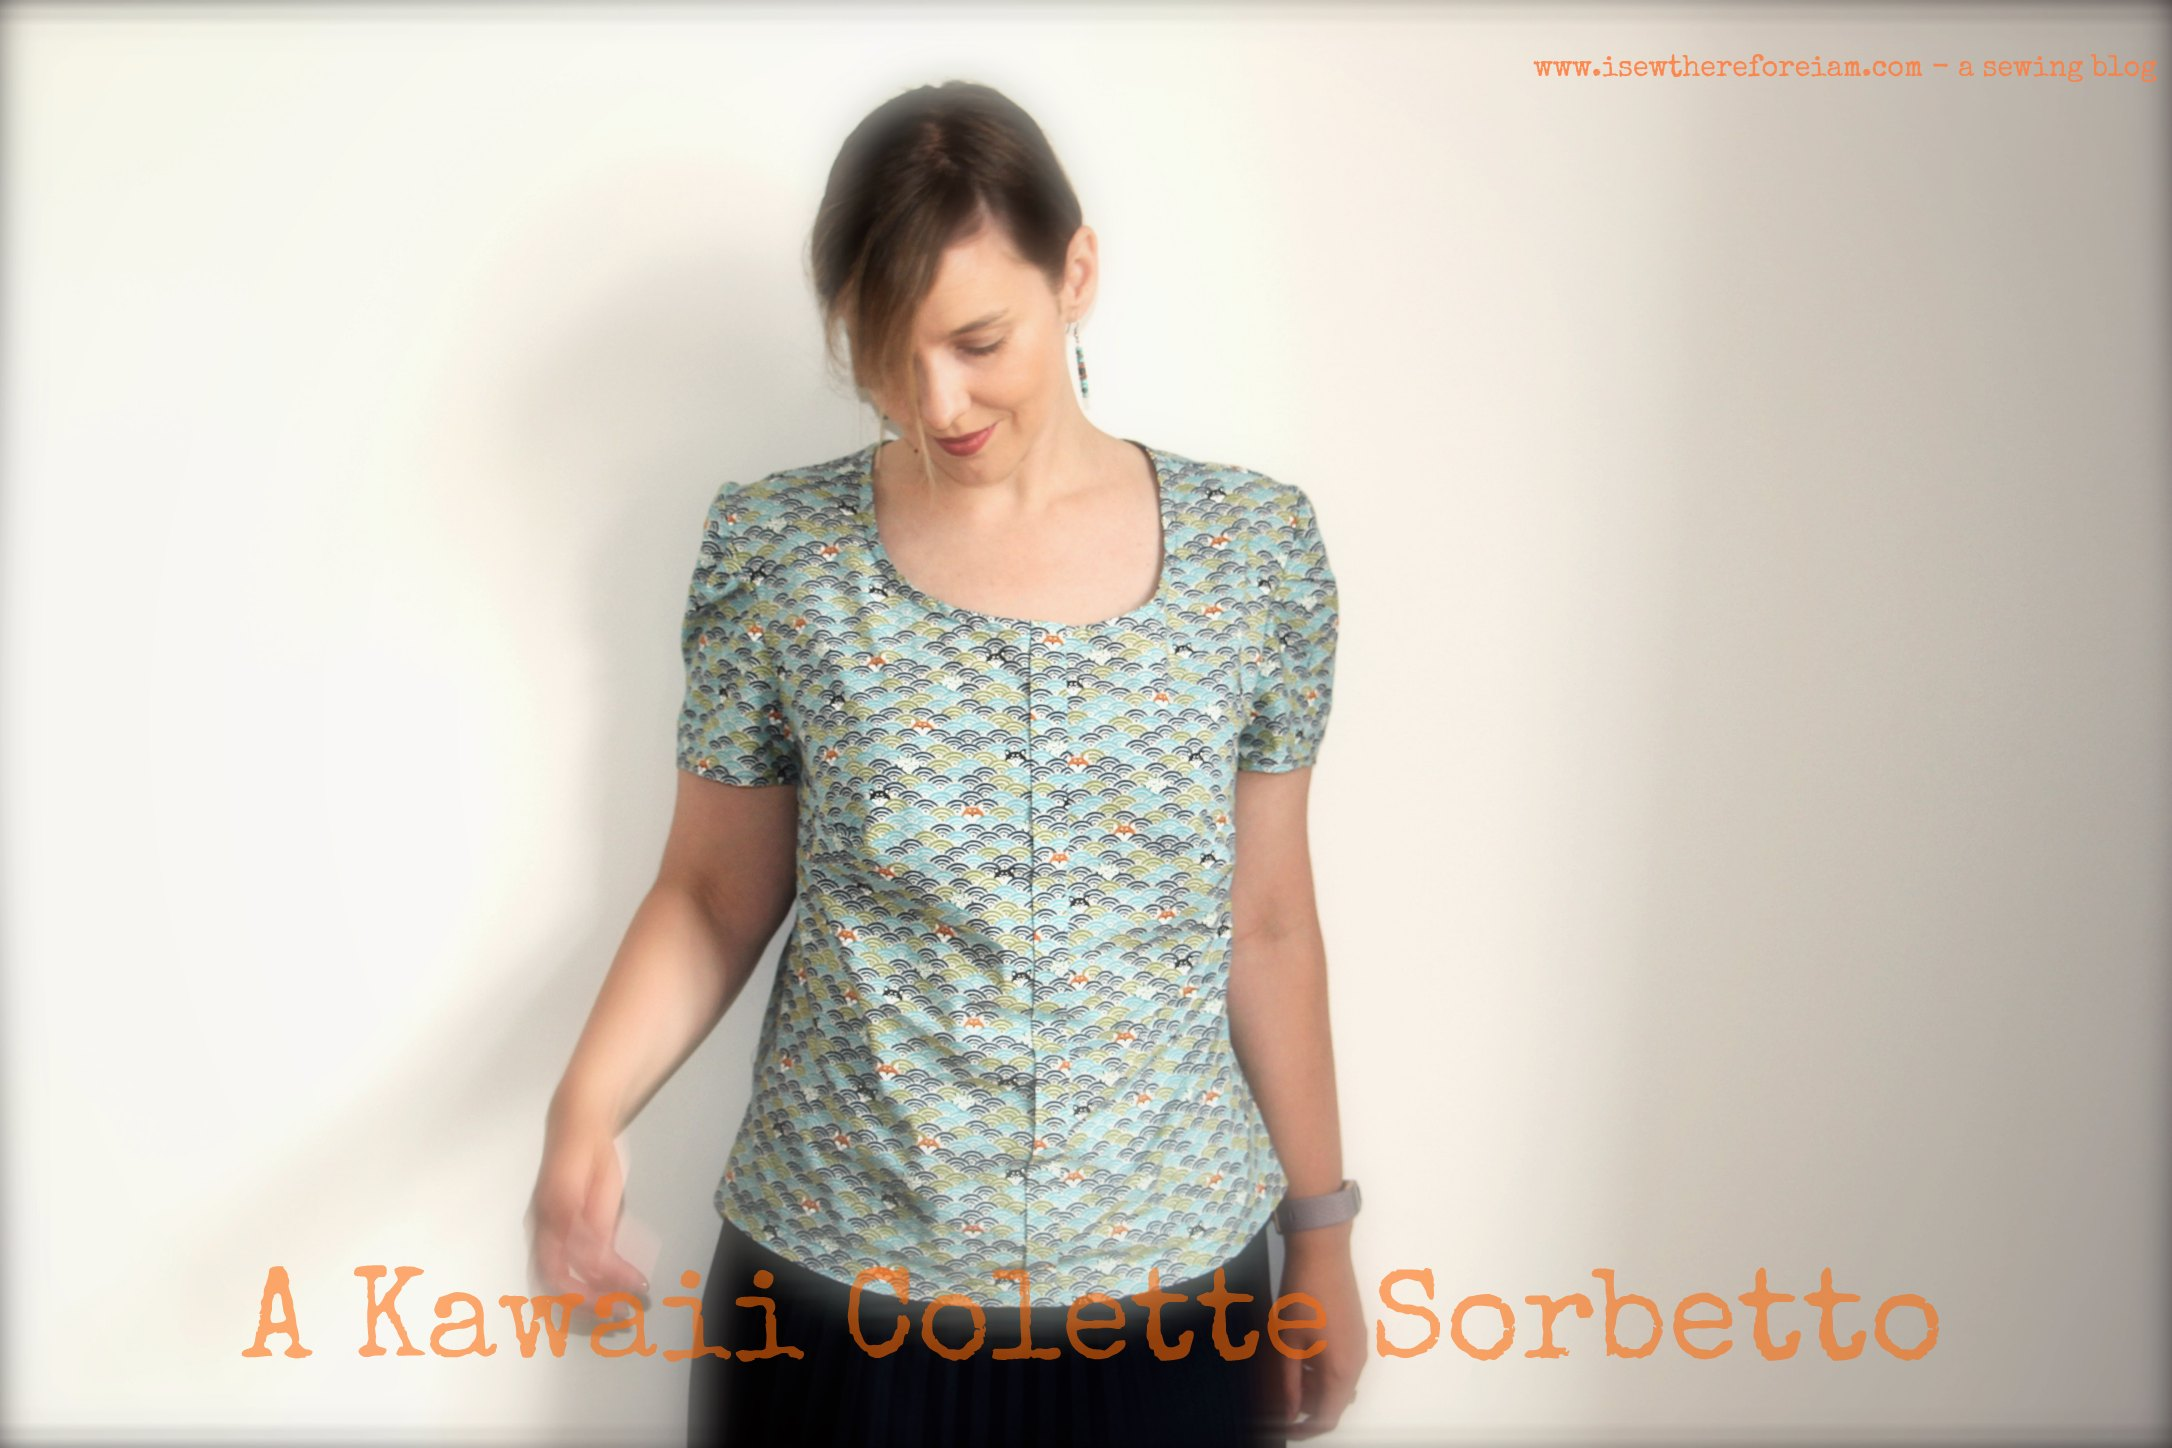 This is the Colette Sorbetto (a great free pattern!) I sewed up using a kawaii cotton I bought in Japan